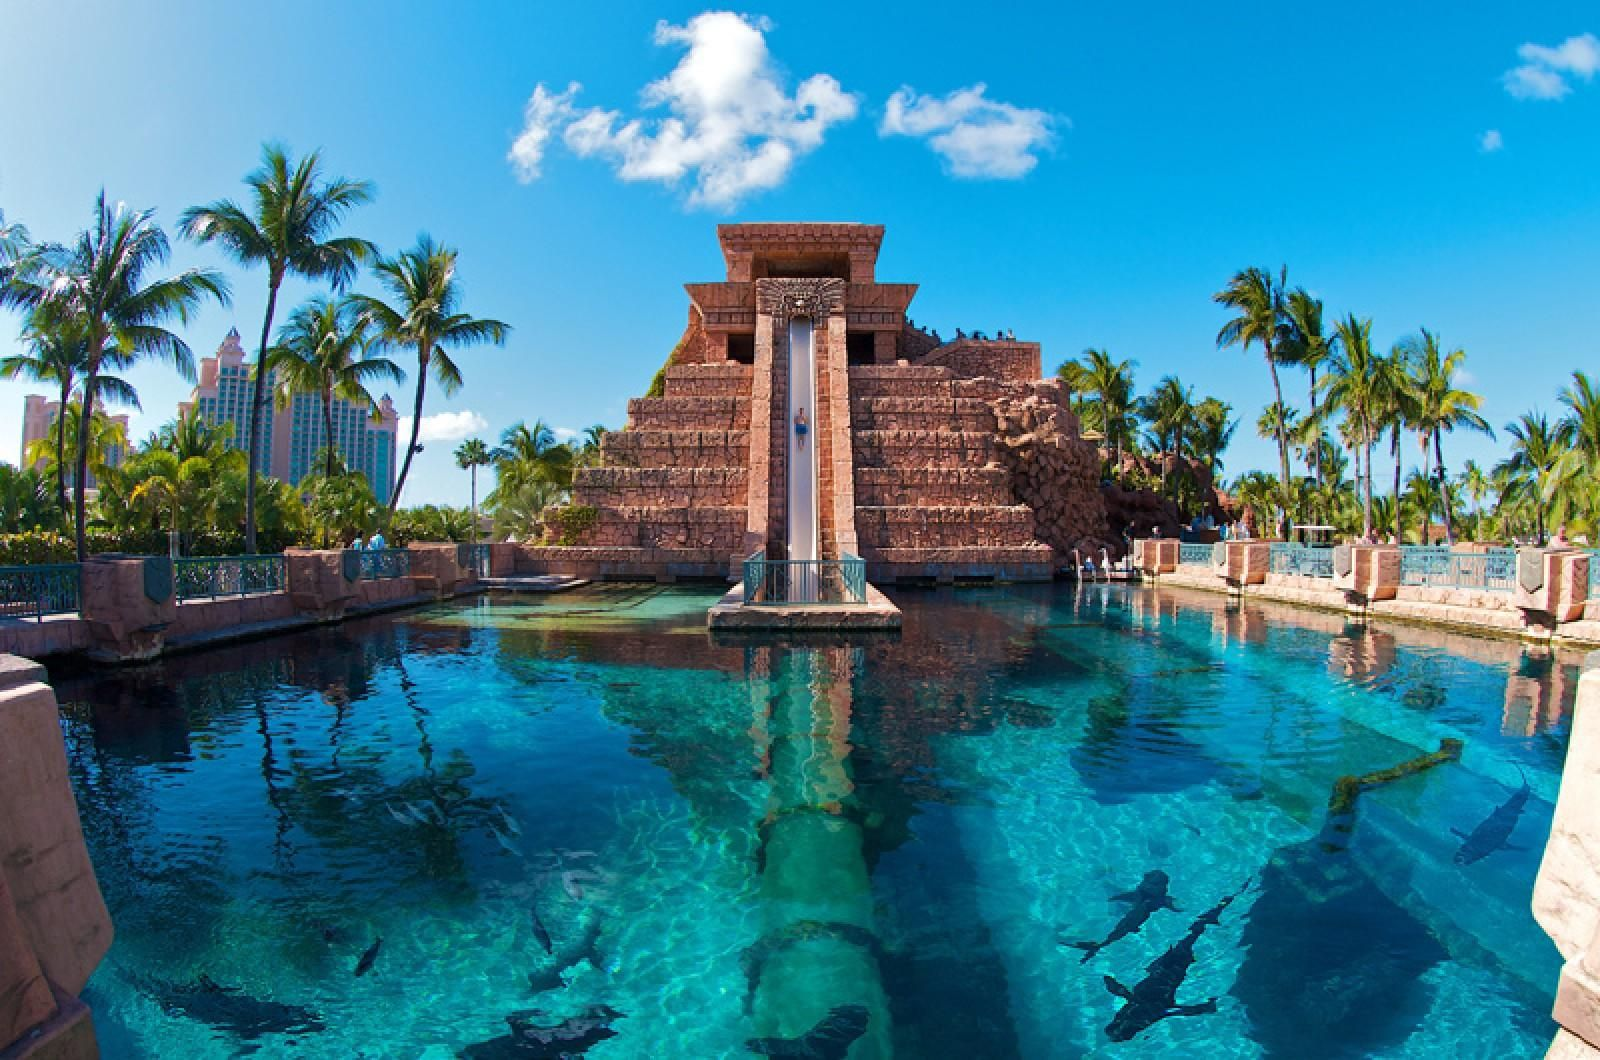 The Mayan Slide Goes Into Shark Infested Waters At Atlantis Hotel Bahamas